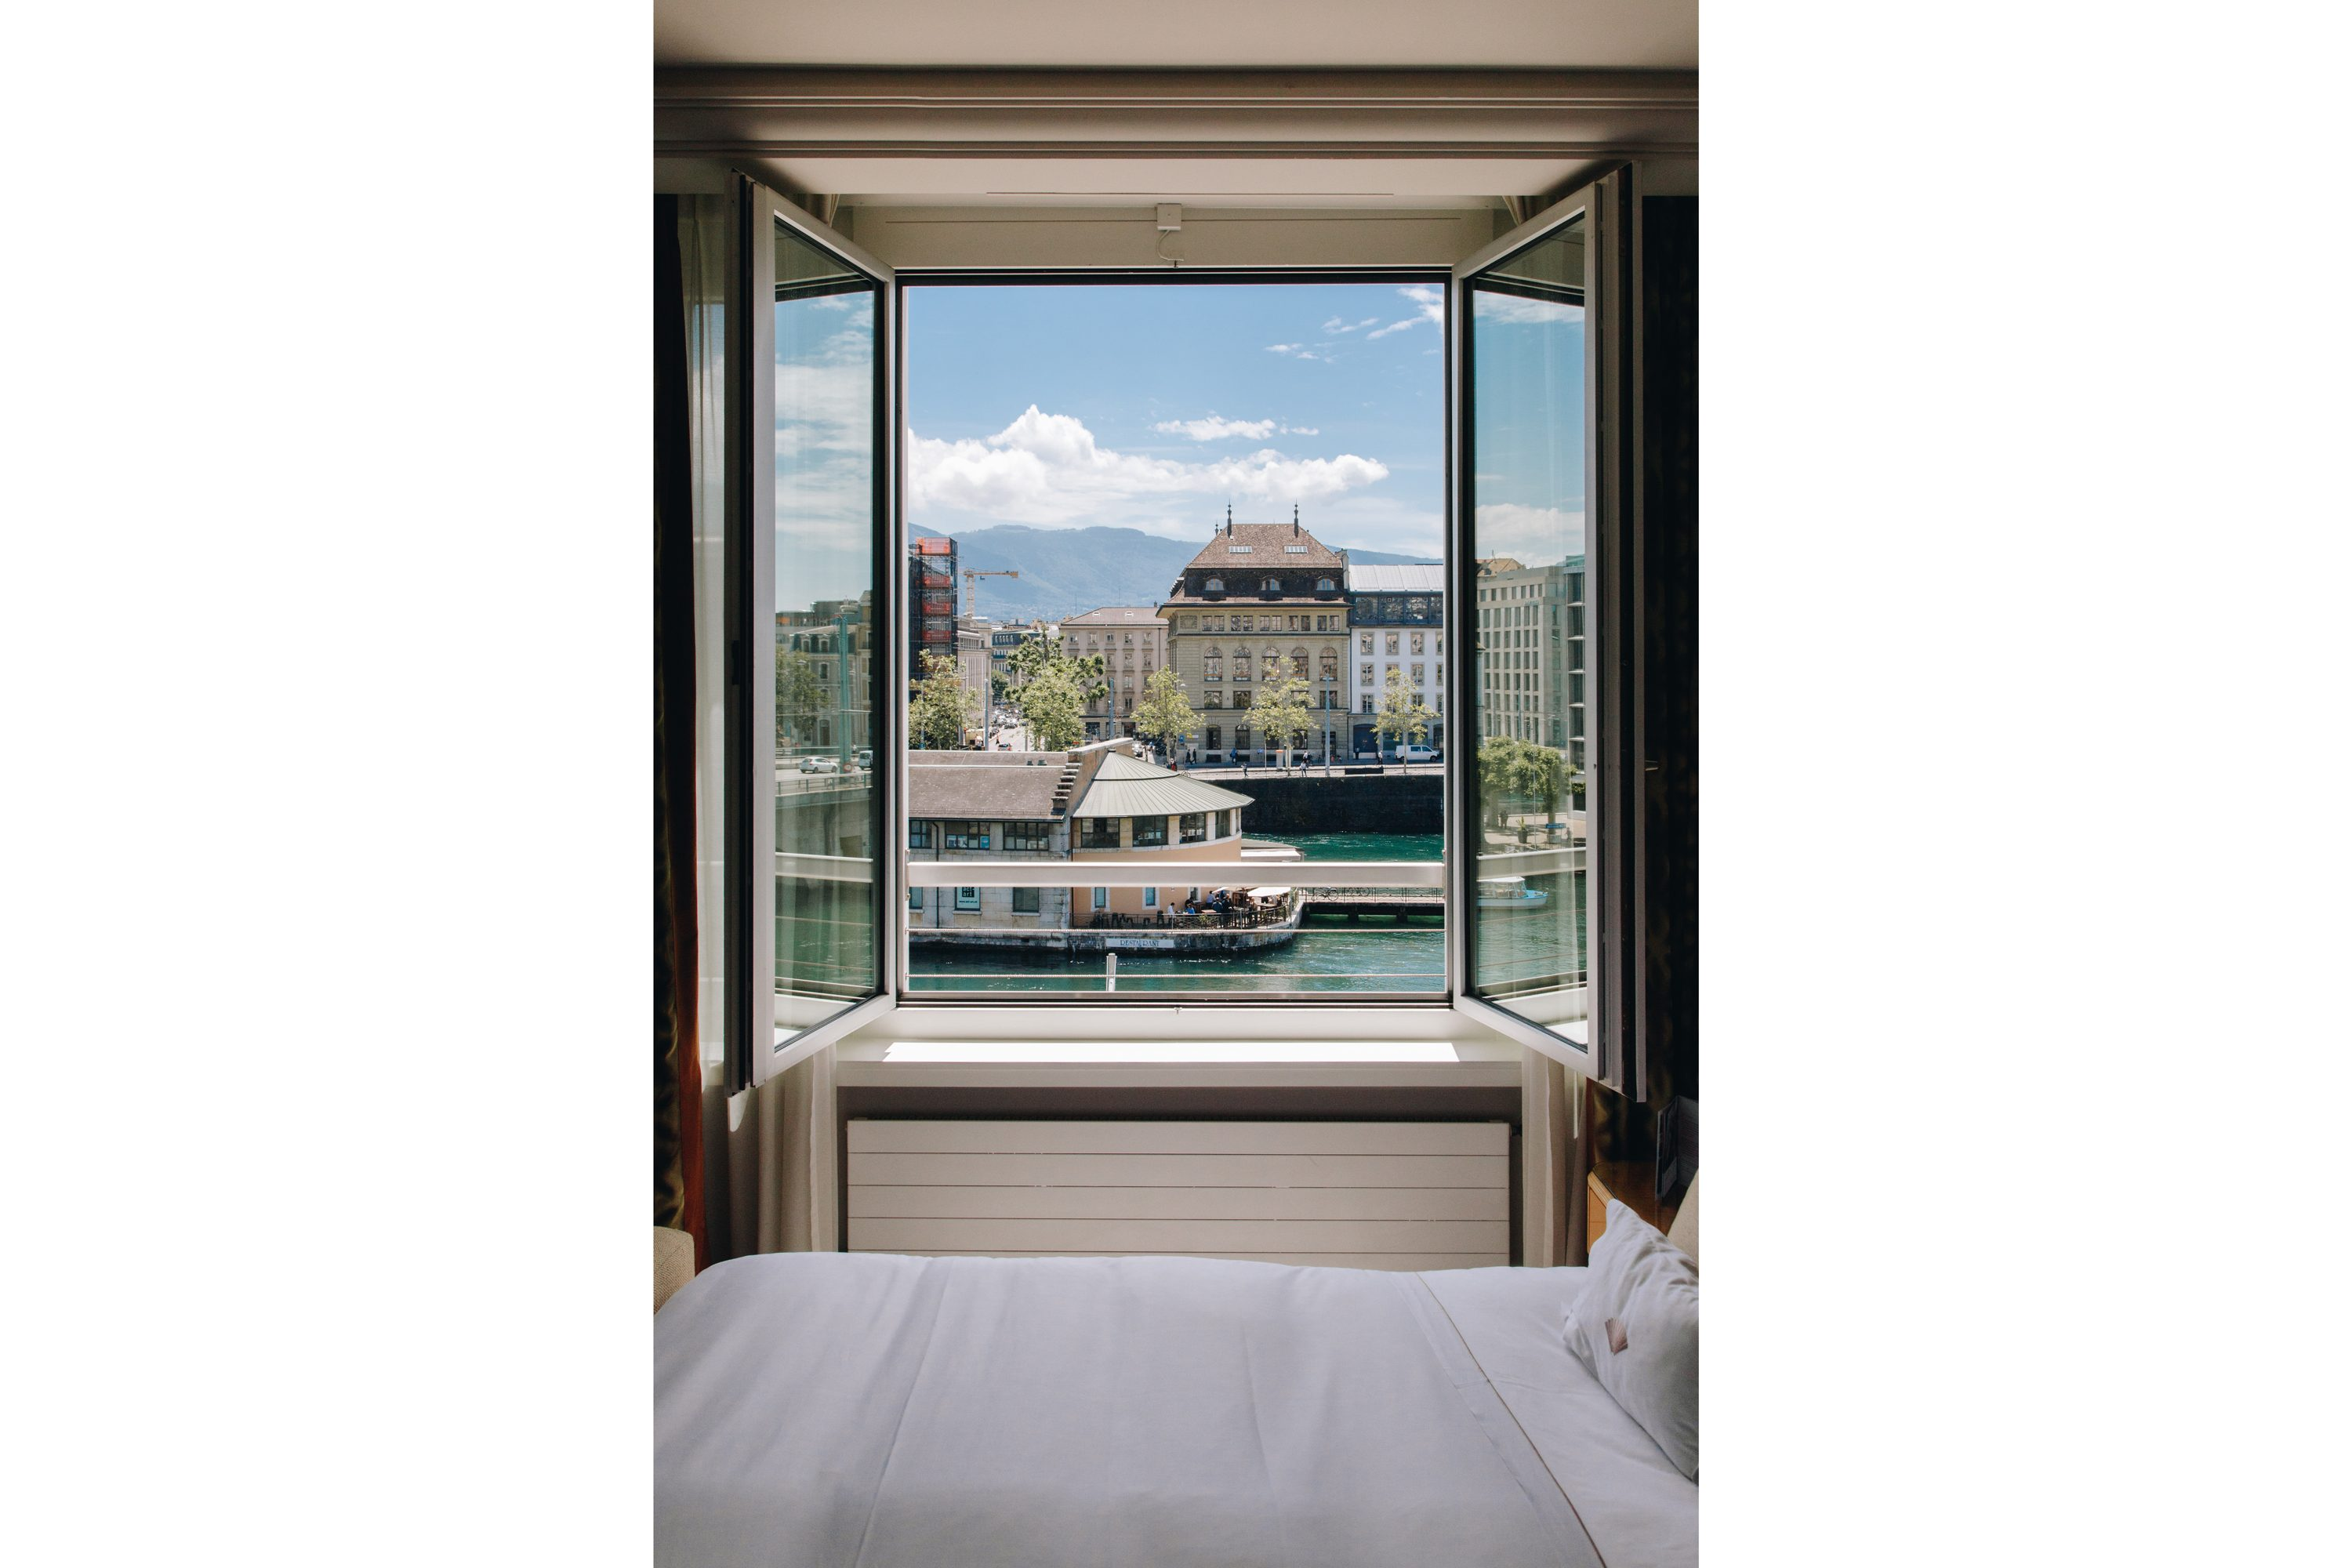 View out of room window at Mandarin Oriental, Geneva